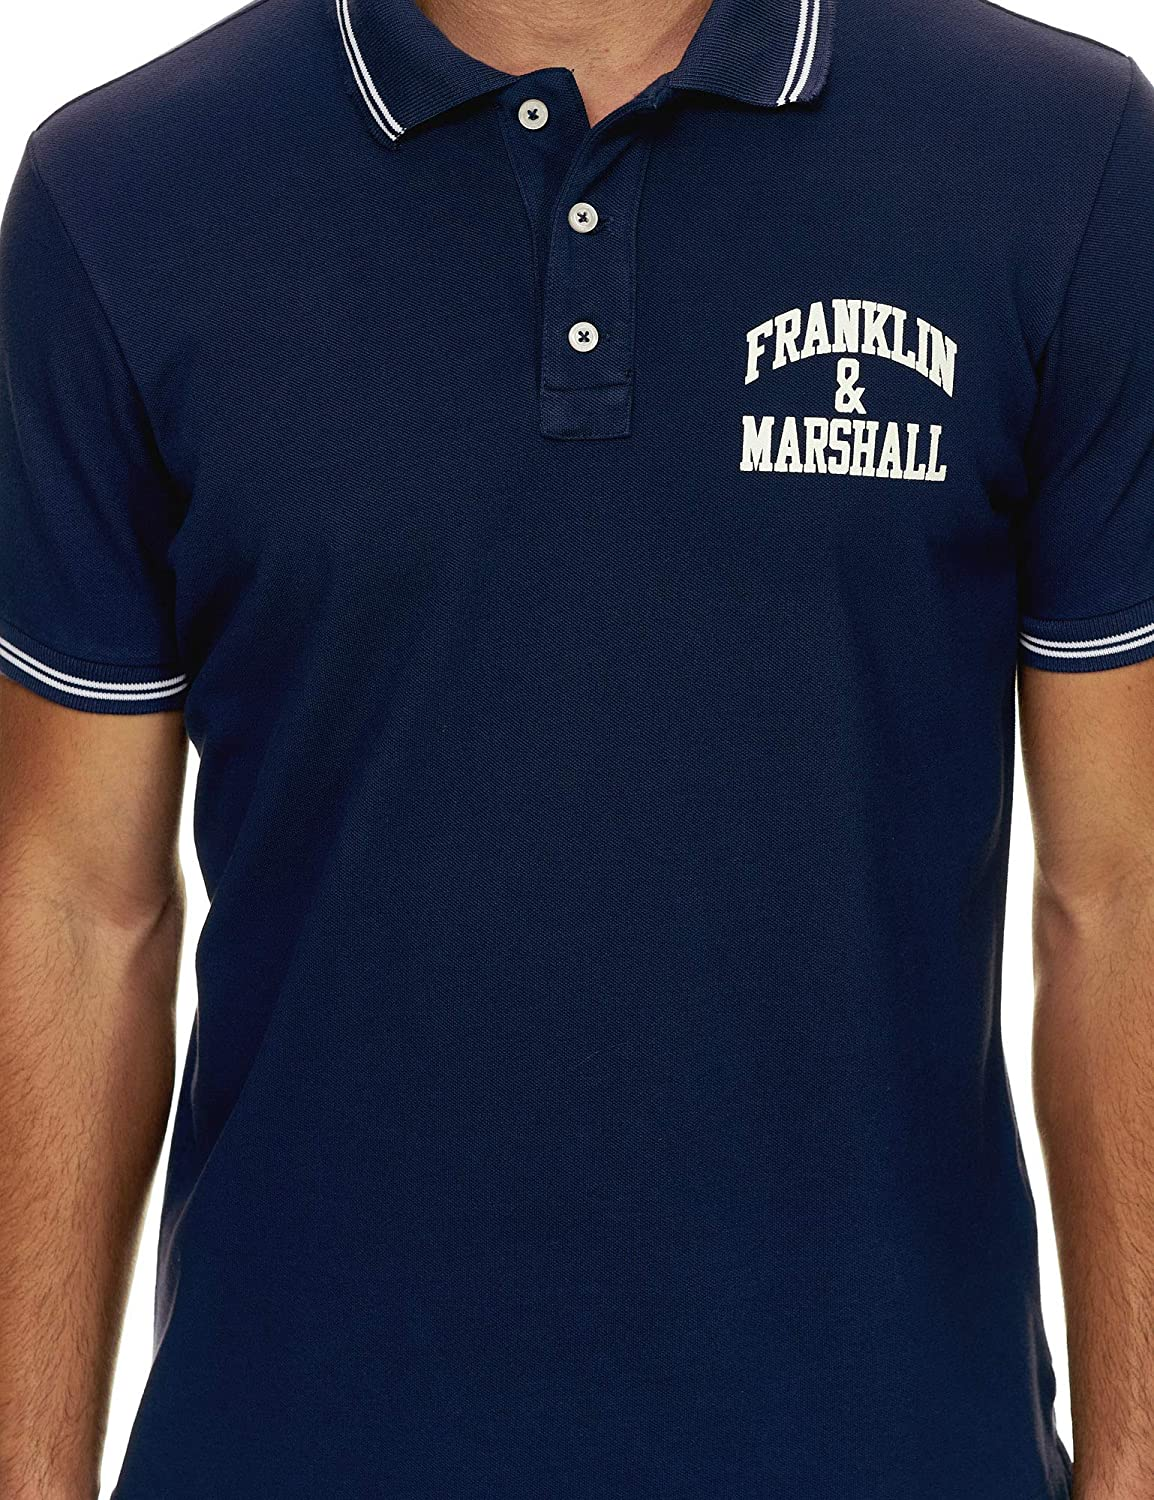 Franklin & Marshall Mens Chest Print Polo T-Shirt Navy in Size ...